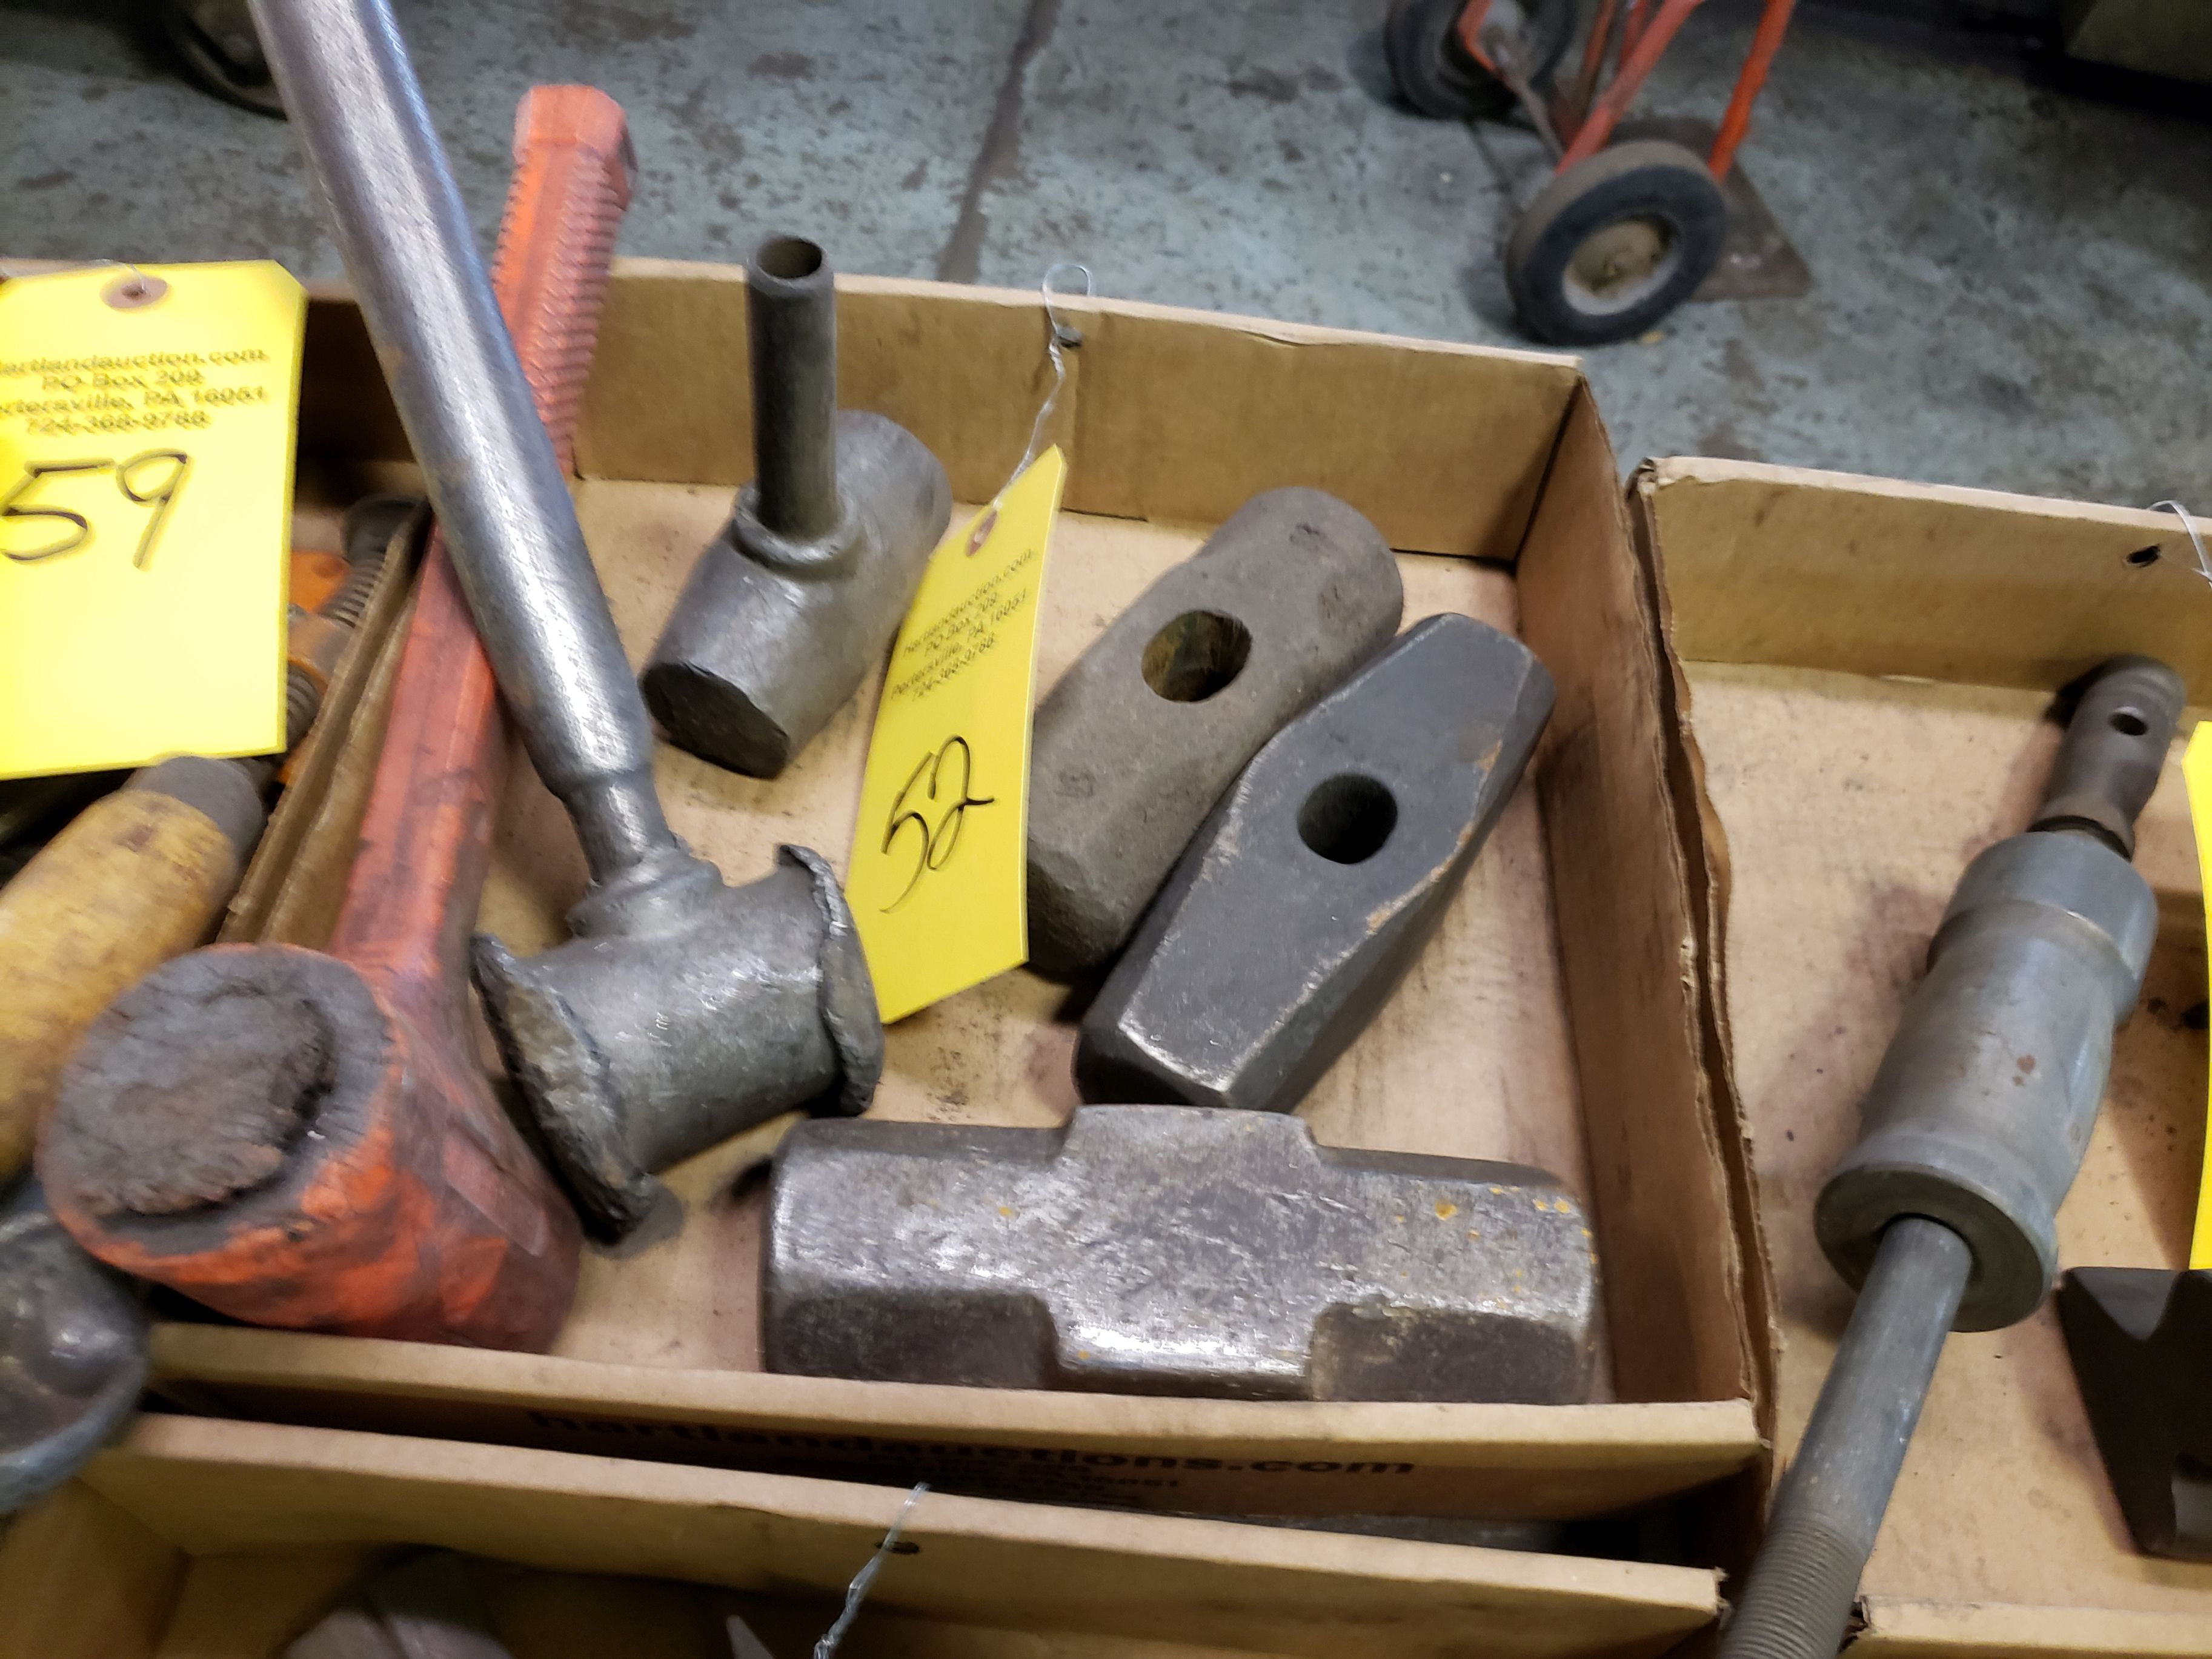 Lot 52 - HAMMERS 2 BOXES